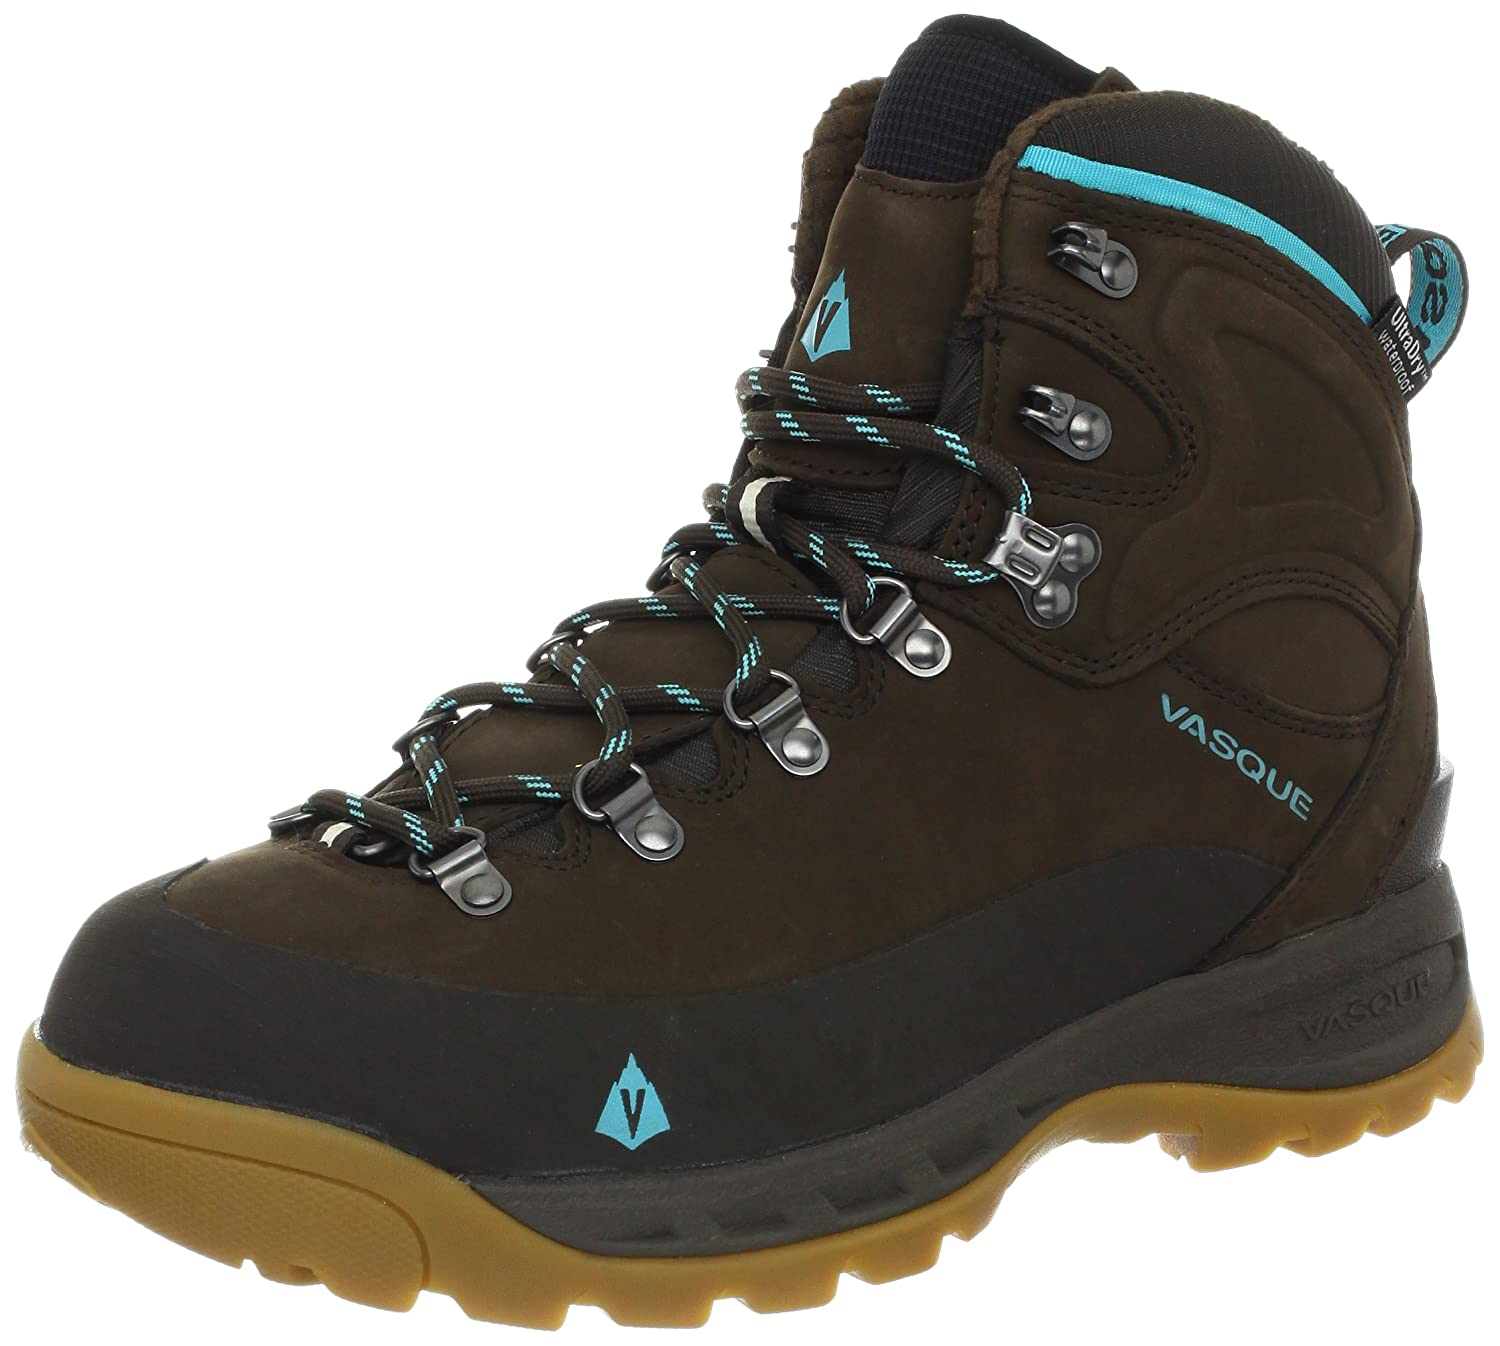 Vasque Women's Snowblime Winter Hiking Boot B006Y7FQSE 10 B(M) US|Turkish Coffee/Scuba Blue